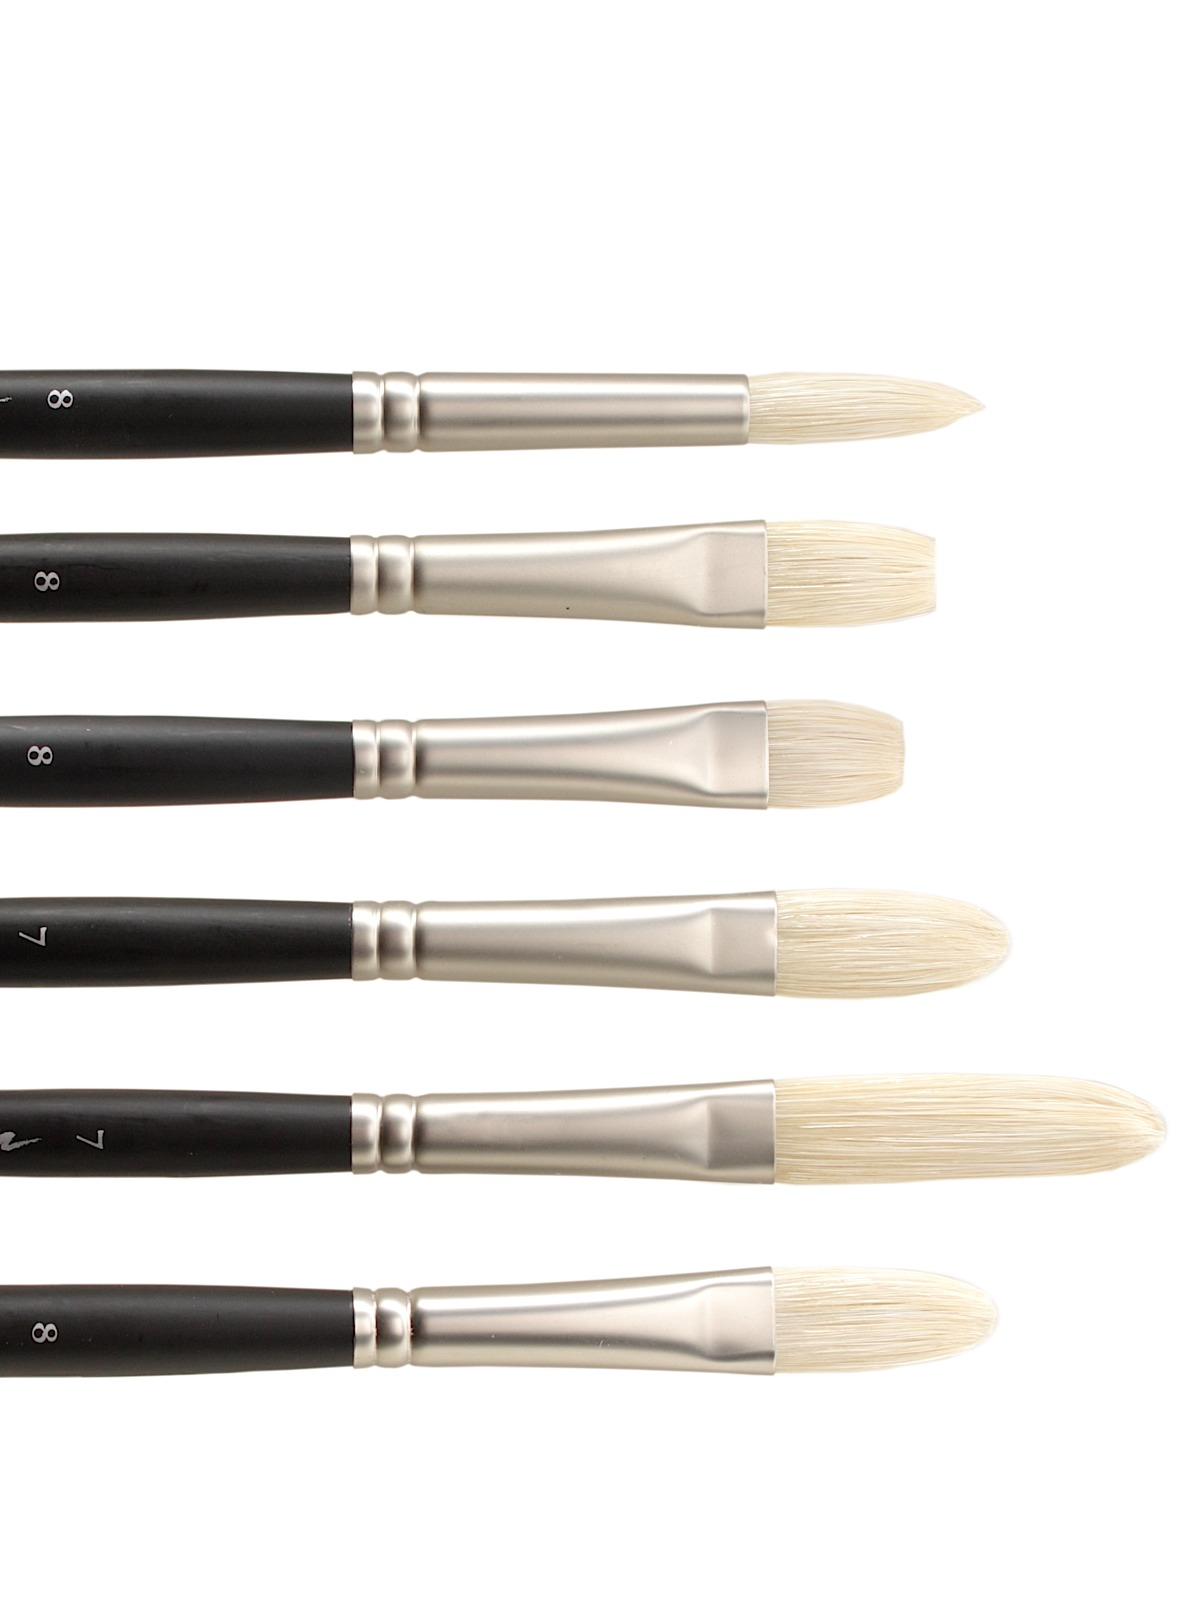 Artists' Oil Brushes